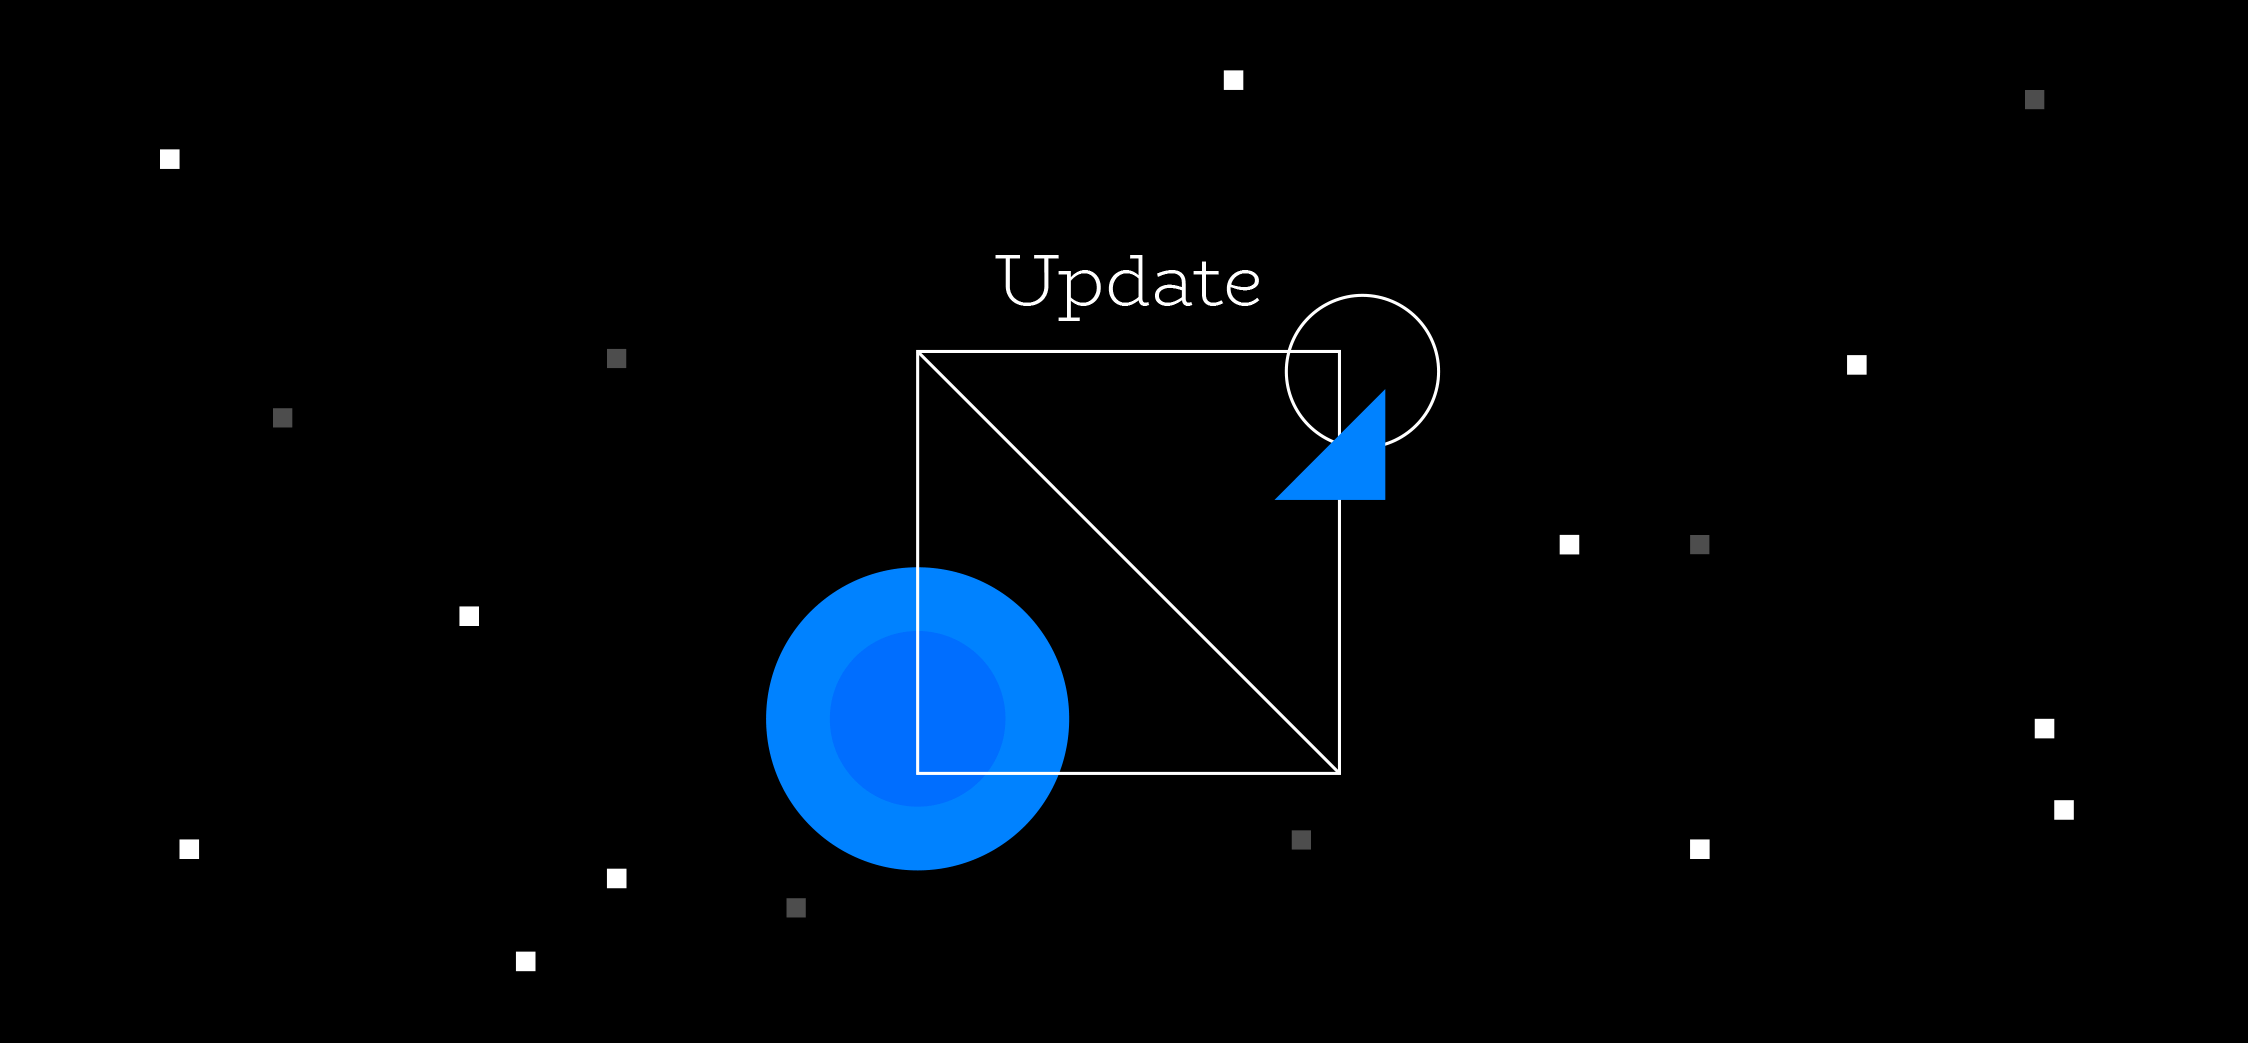 https://static.airbridge.io/images/2017_mail_img/5month_update_mail3.png